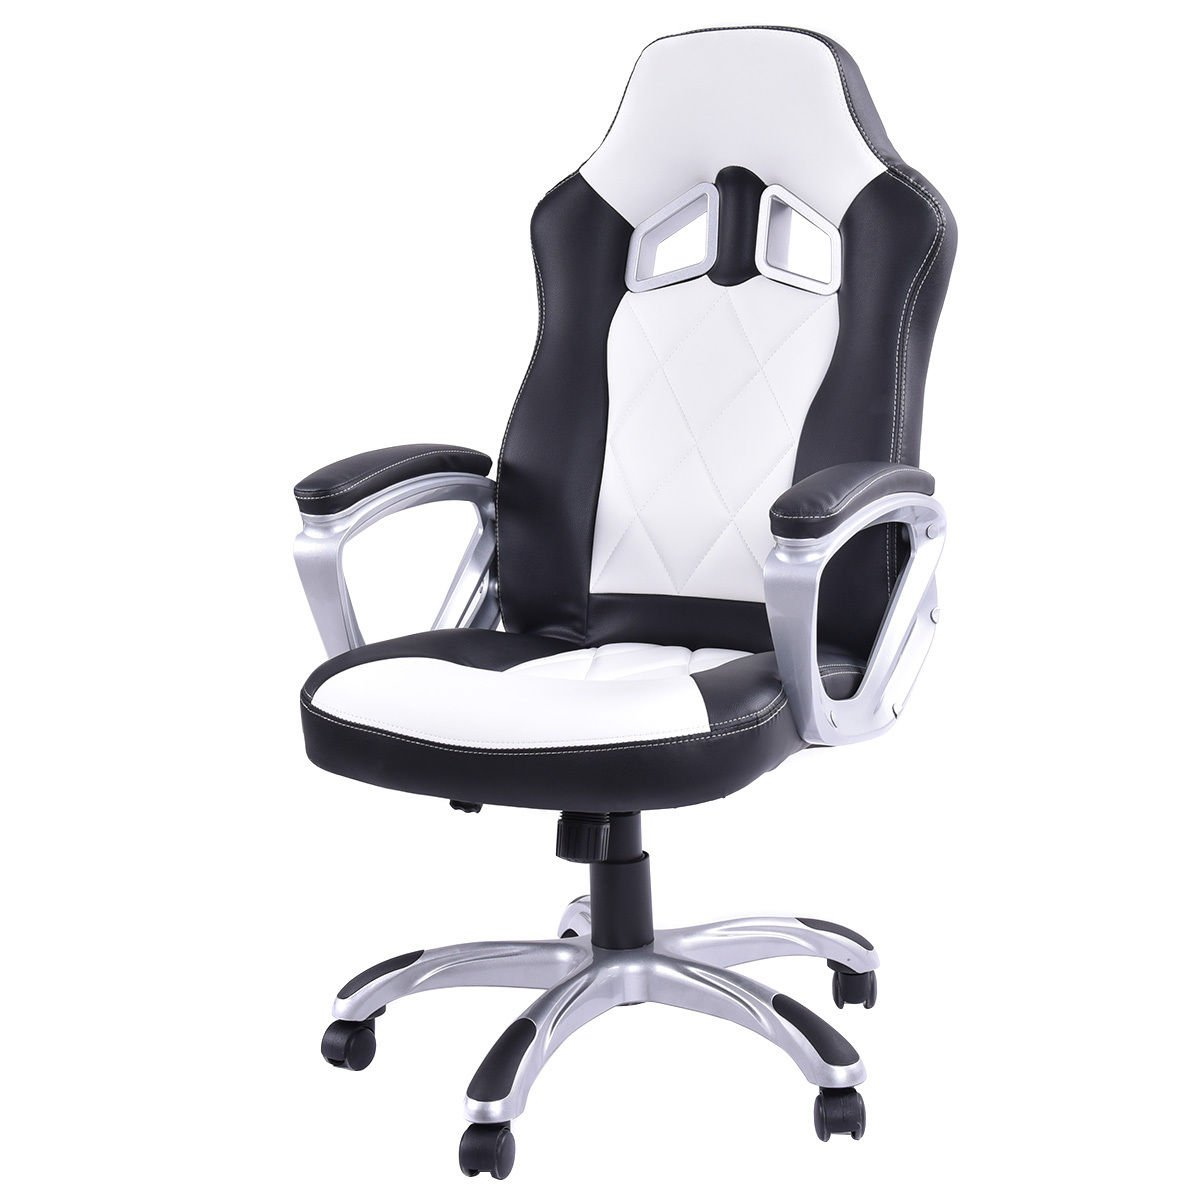 New MTN-G High Back Racing Style Bucket Seat Gaming Chair Swivel Office Desk Task White